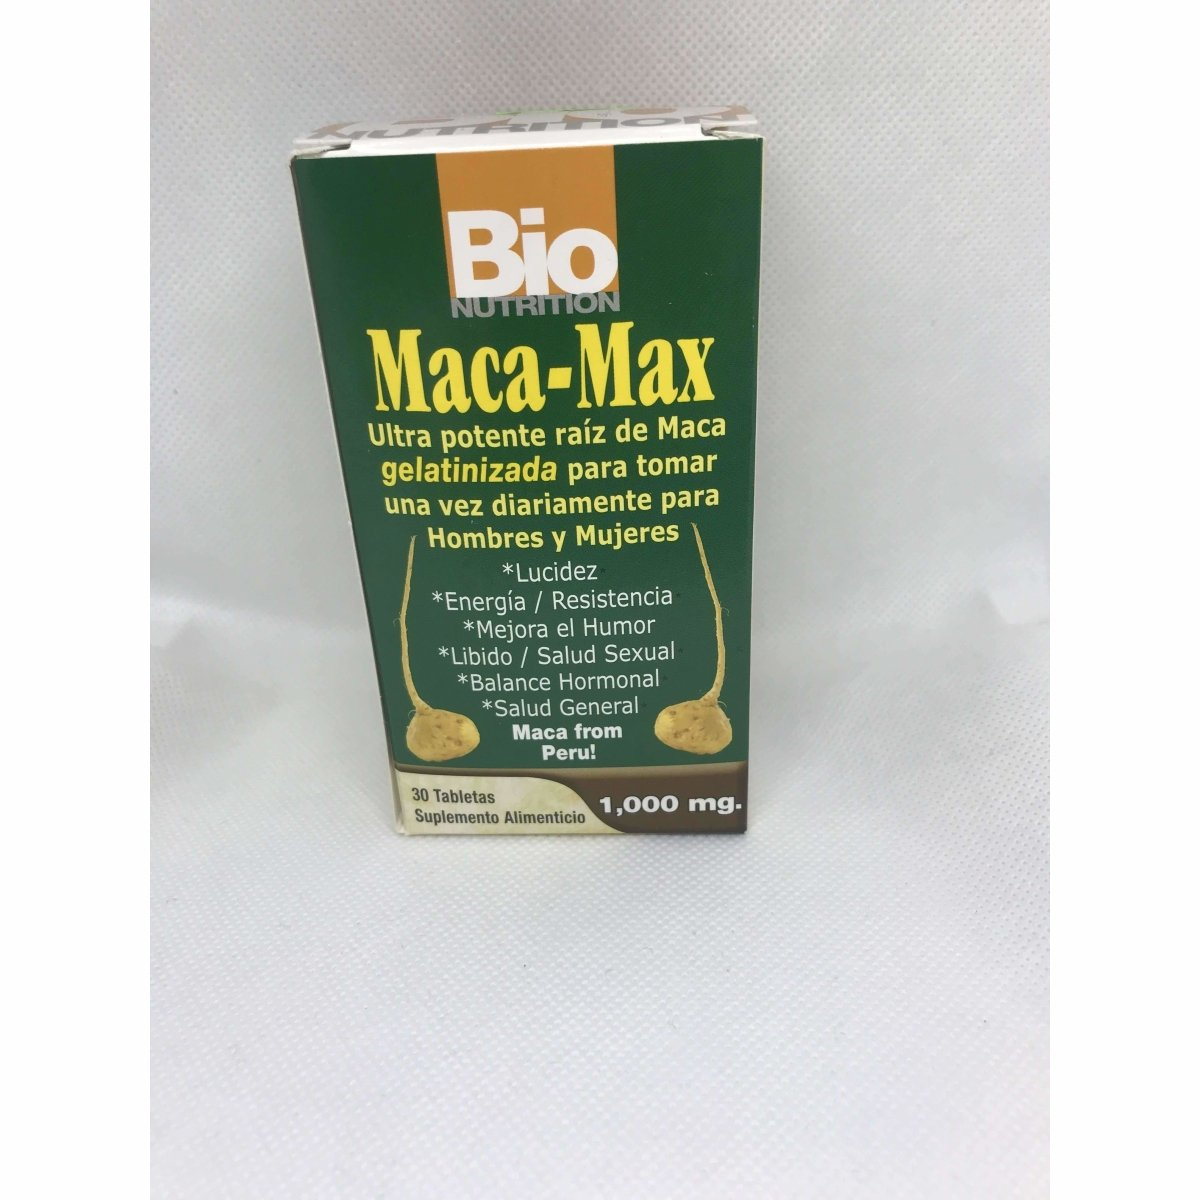 Maca-Max 1,000mg 30 Tablets